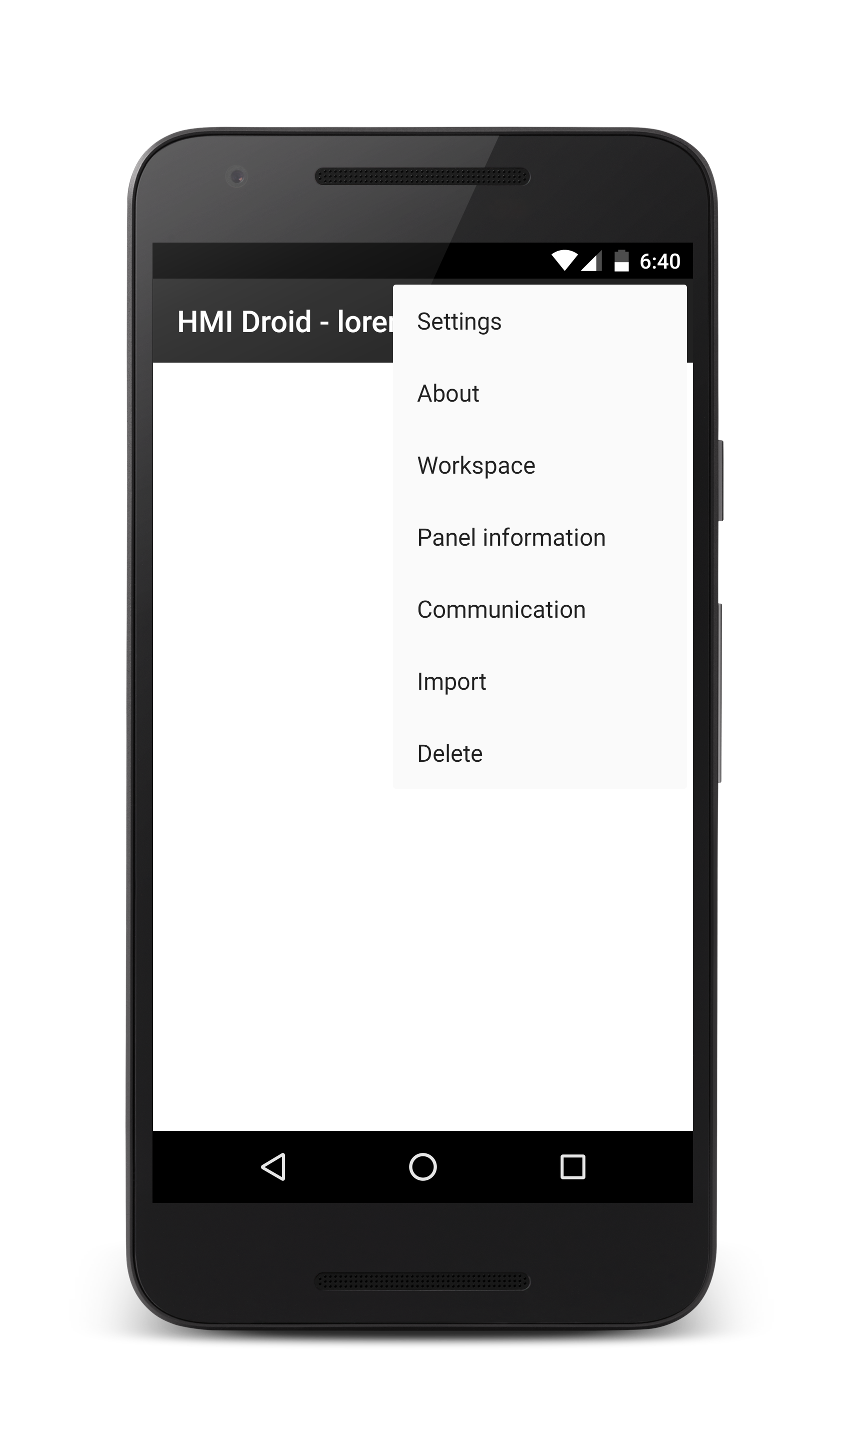 HMI Droid - main menu